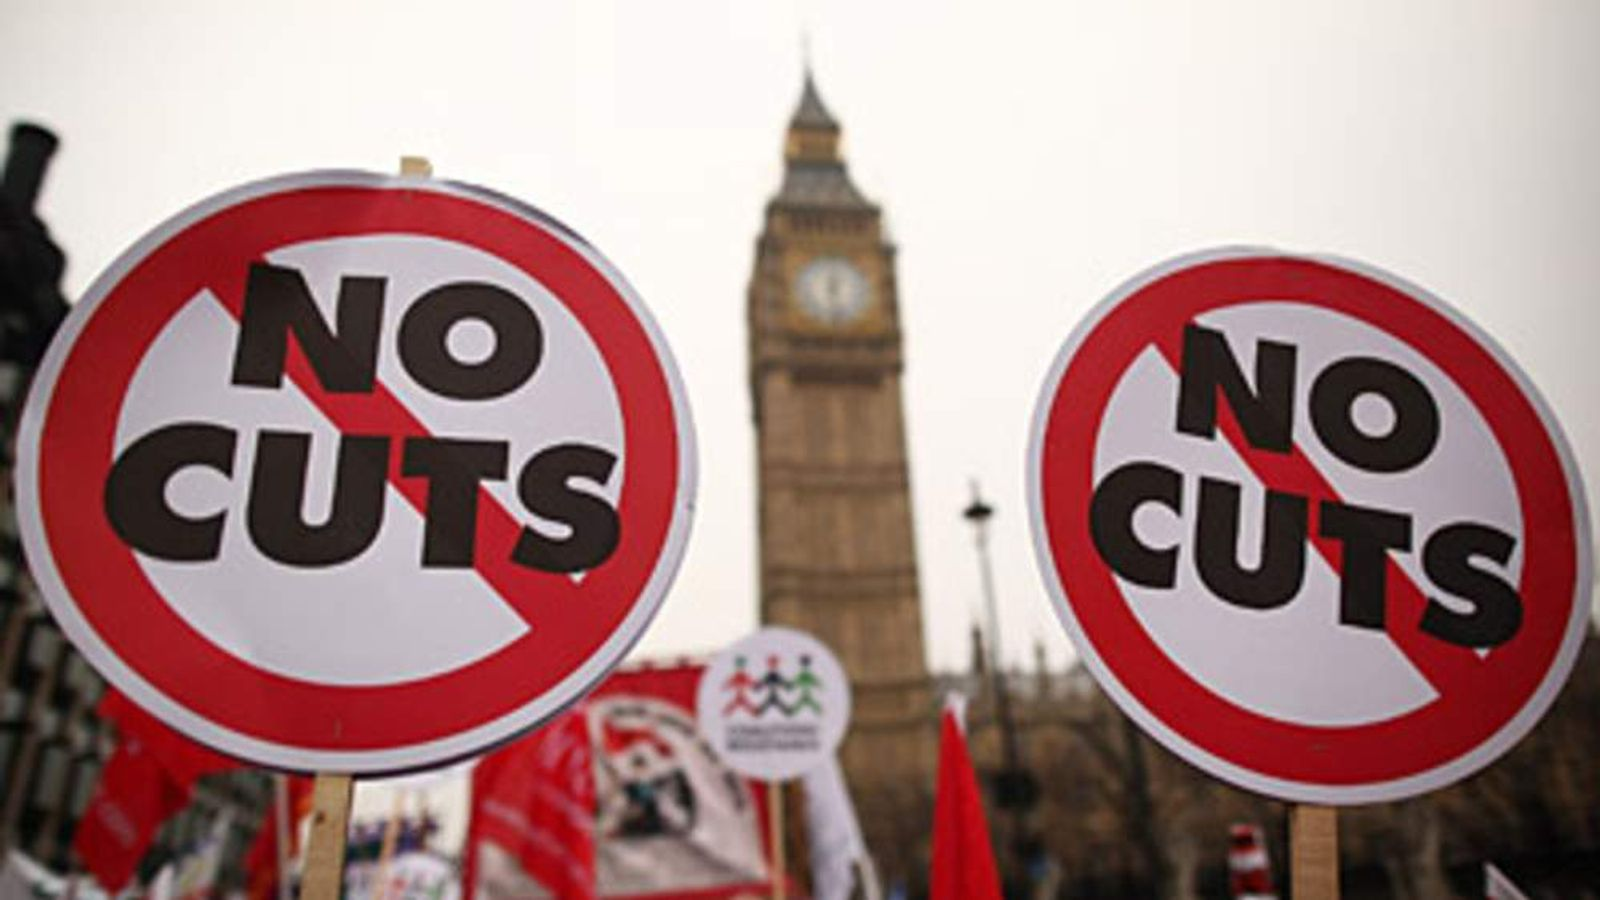 The TUC organised a march against spending cuts on March 26